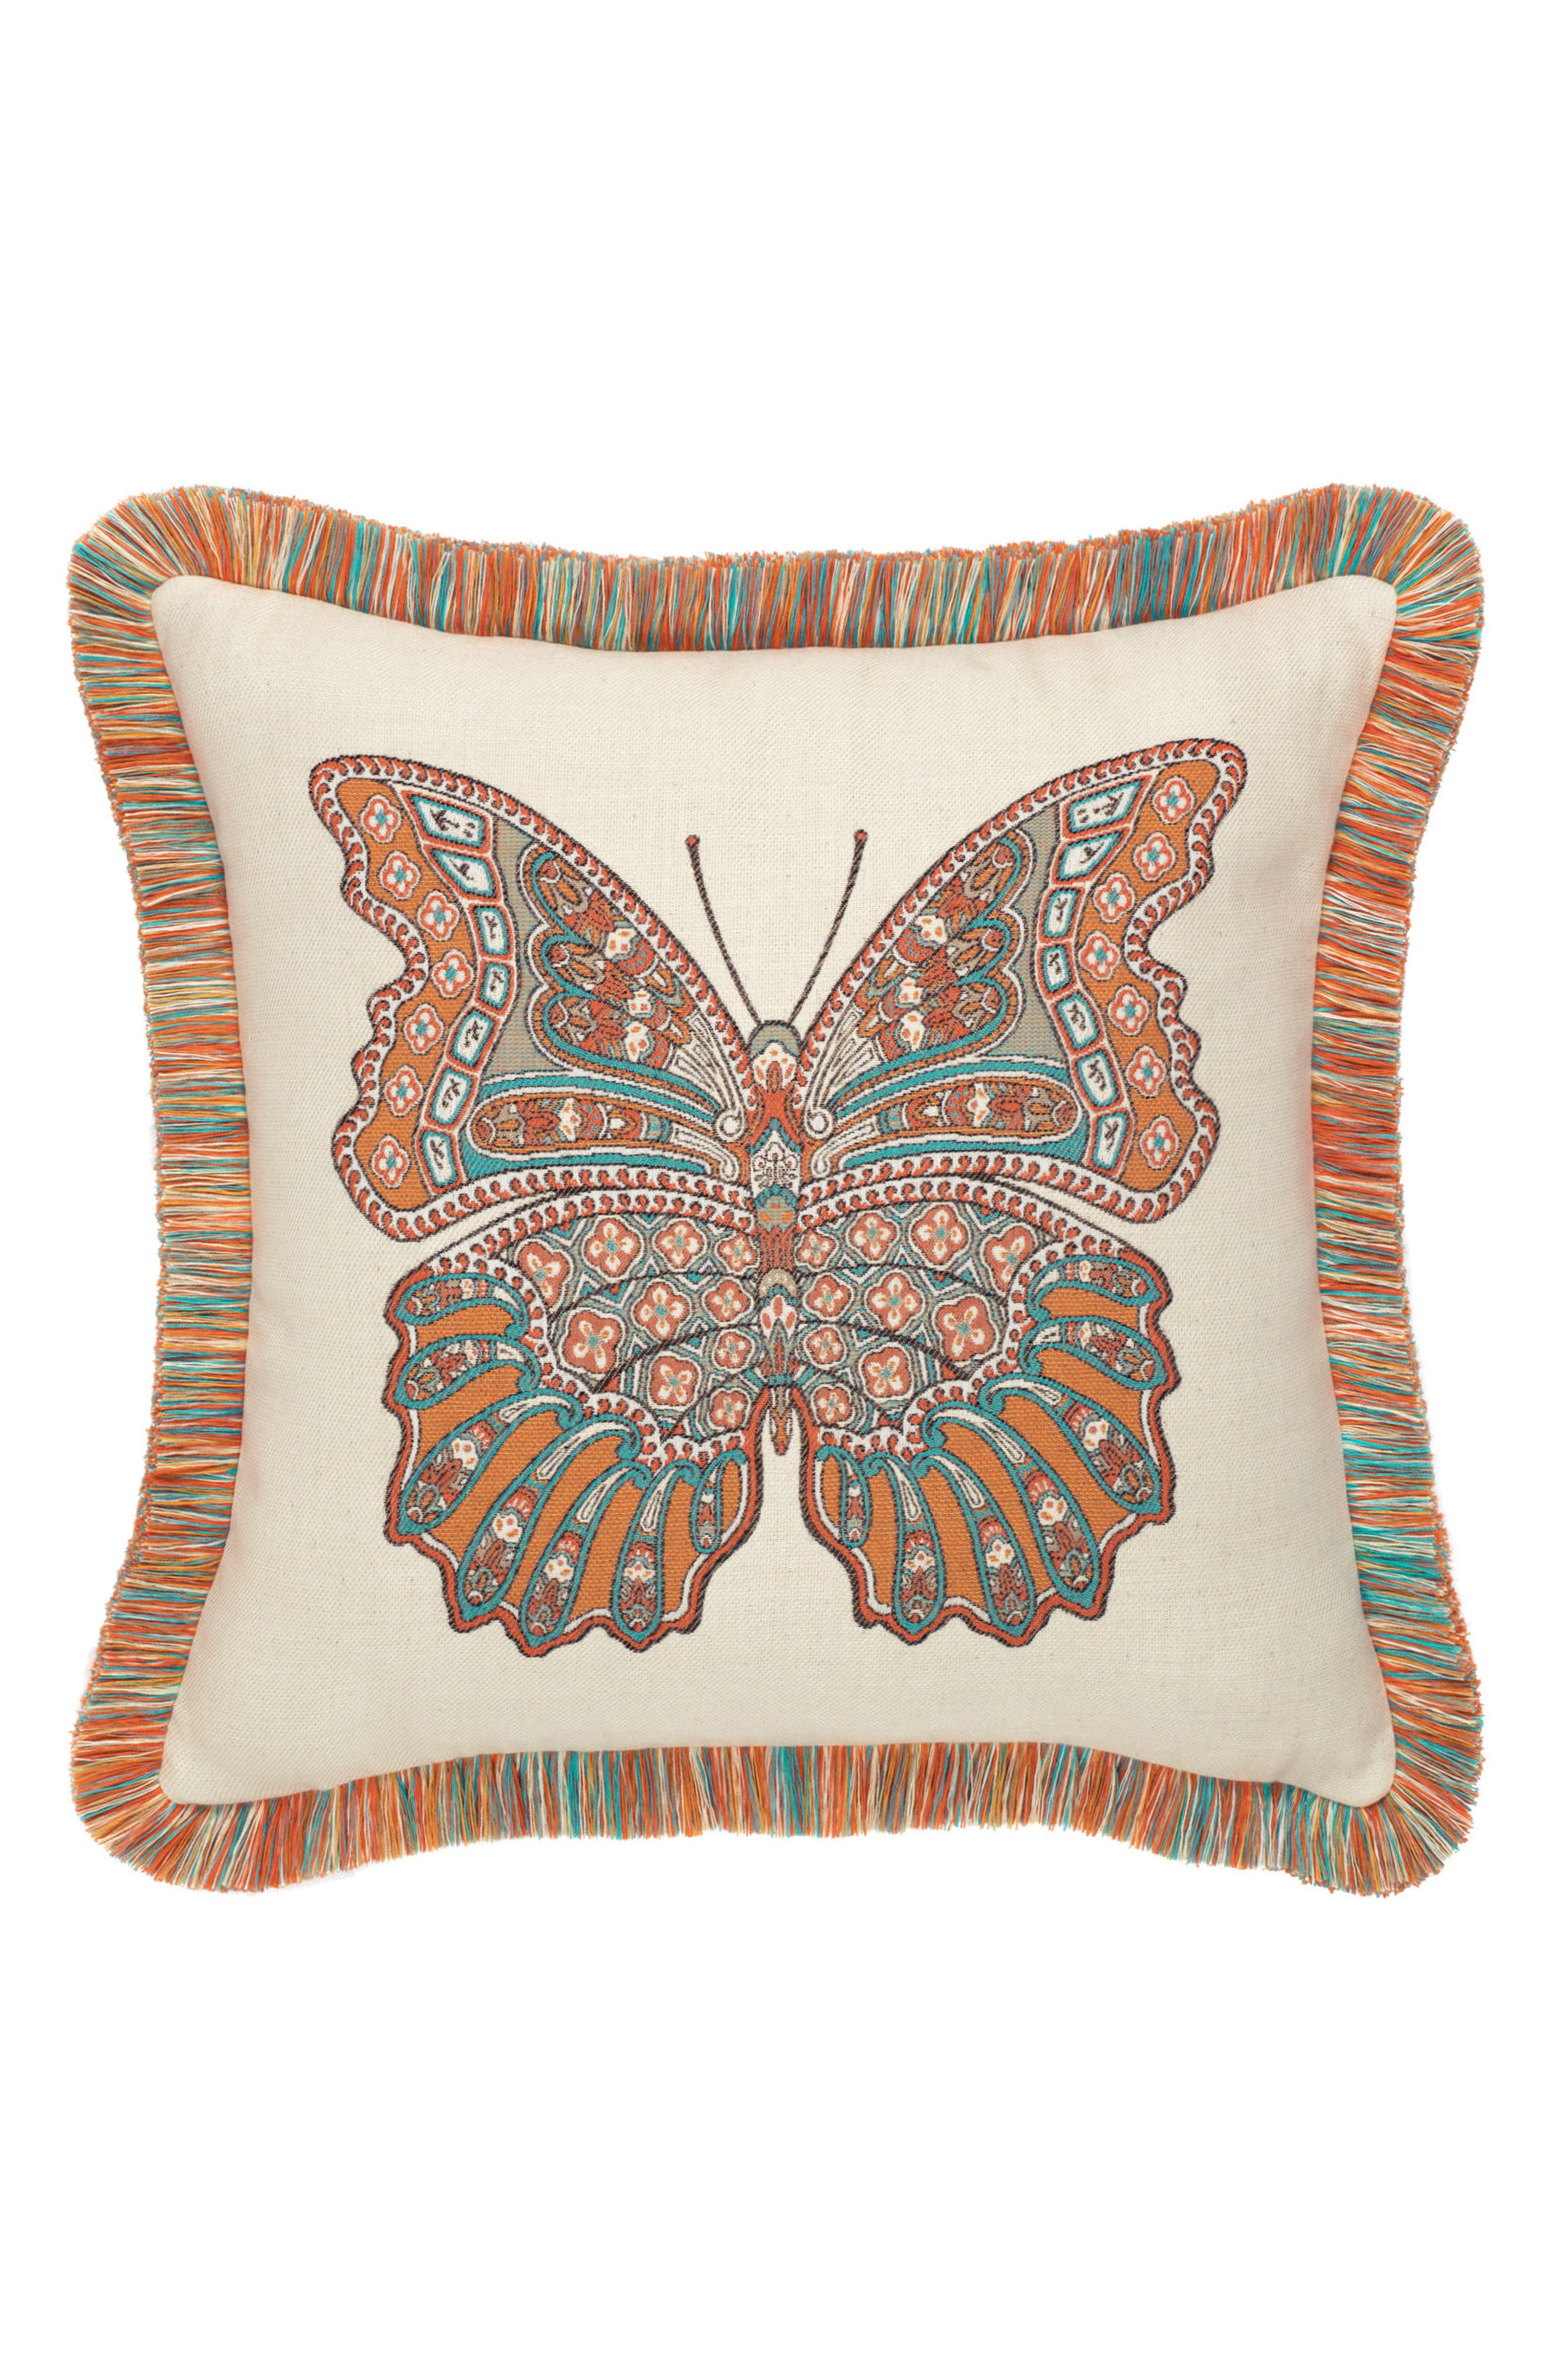 Mariposa Lagoon Indoor/Outdoor Accent Pillow,                             Main thumbnail 1, color,                             ORANGE/ IVORY